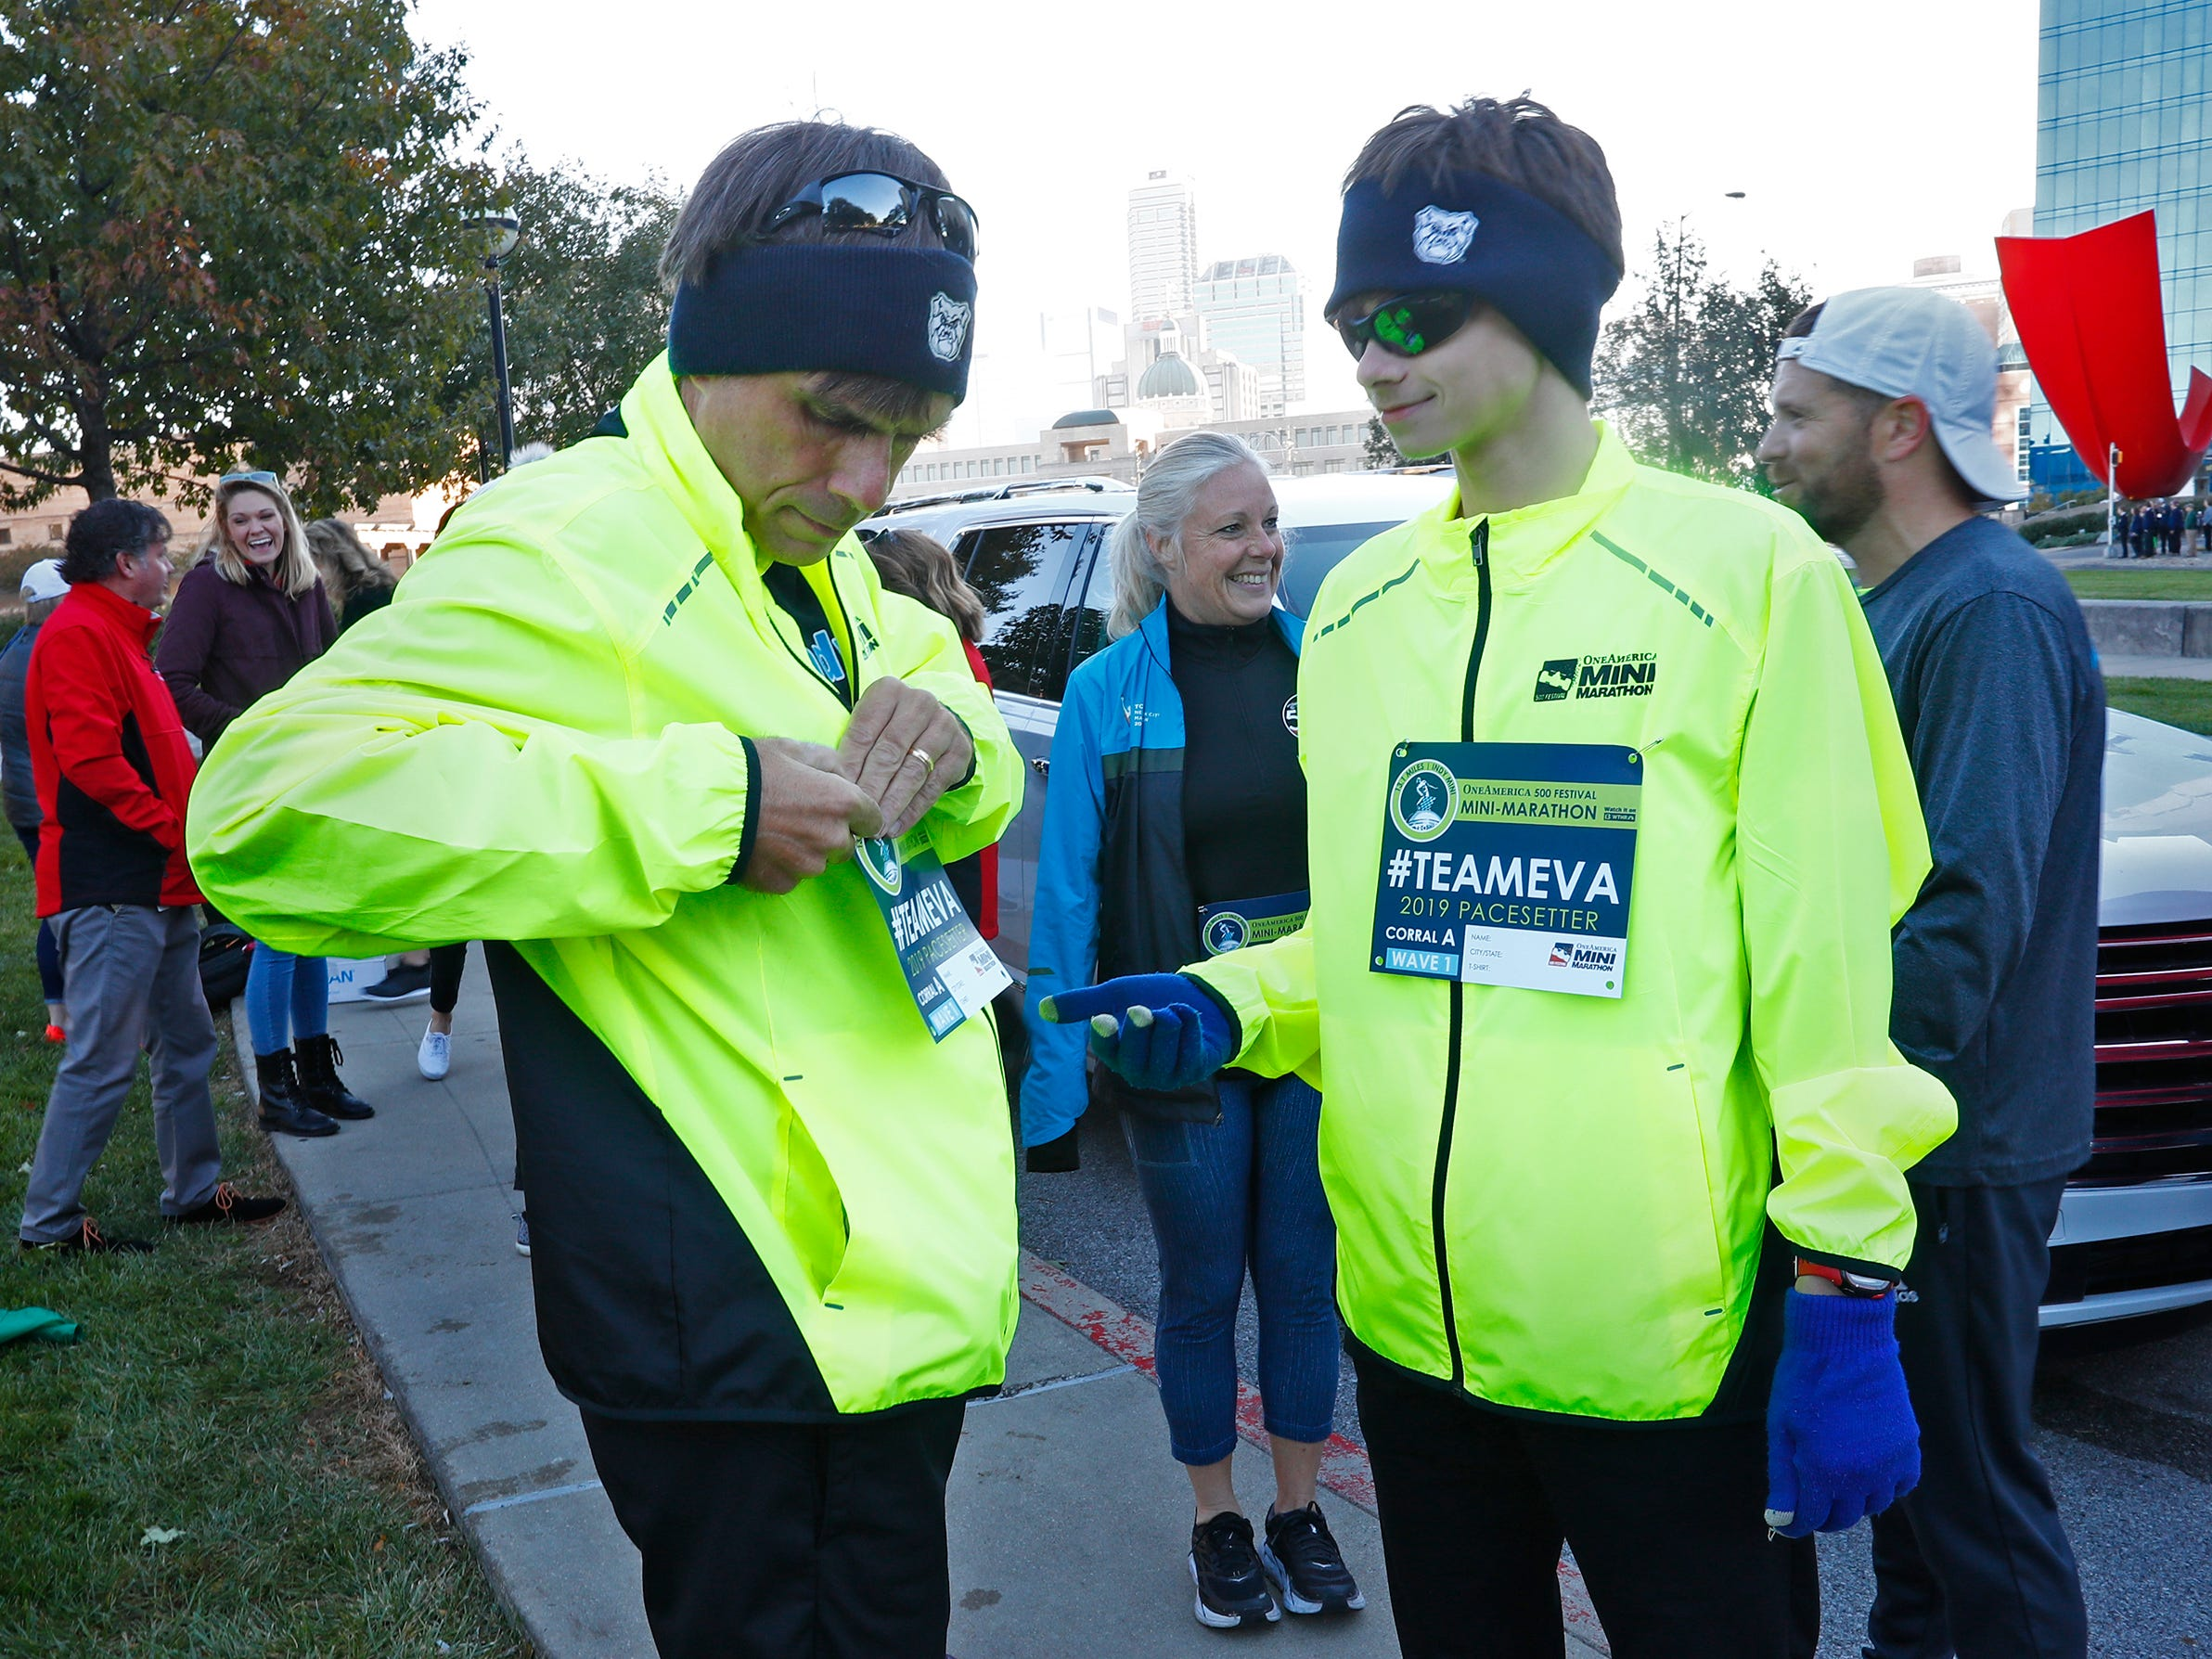 Rob and Ryan Rueff put on their Team Eva race bibs, Wednesday, Oct. 24, 2018, before the pace-setting run for the 2019 OneAmerica 500 Festival Mini-Marathon.  The 500 Festival will donate $1 to the CANDLES Holocaust Museum in Terre Haute for every mini-marathon participant who finishes the 2019 race in a better time than Team Eva.  Holocaust survivor Eva Kor joined the fun at the Indianapolis Motor Speedway's Yard of Bricks and ran the very last part of the race.